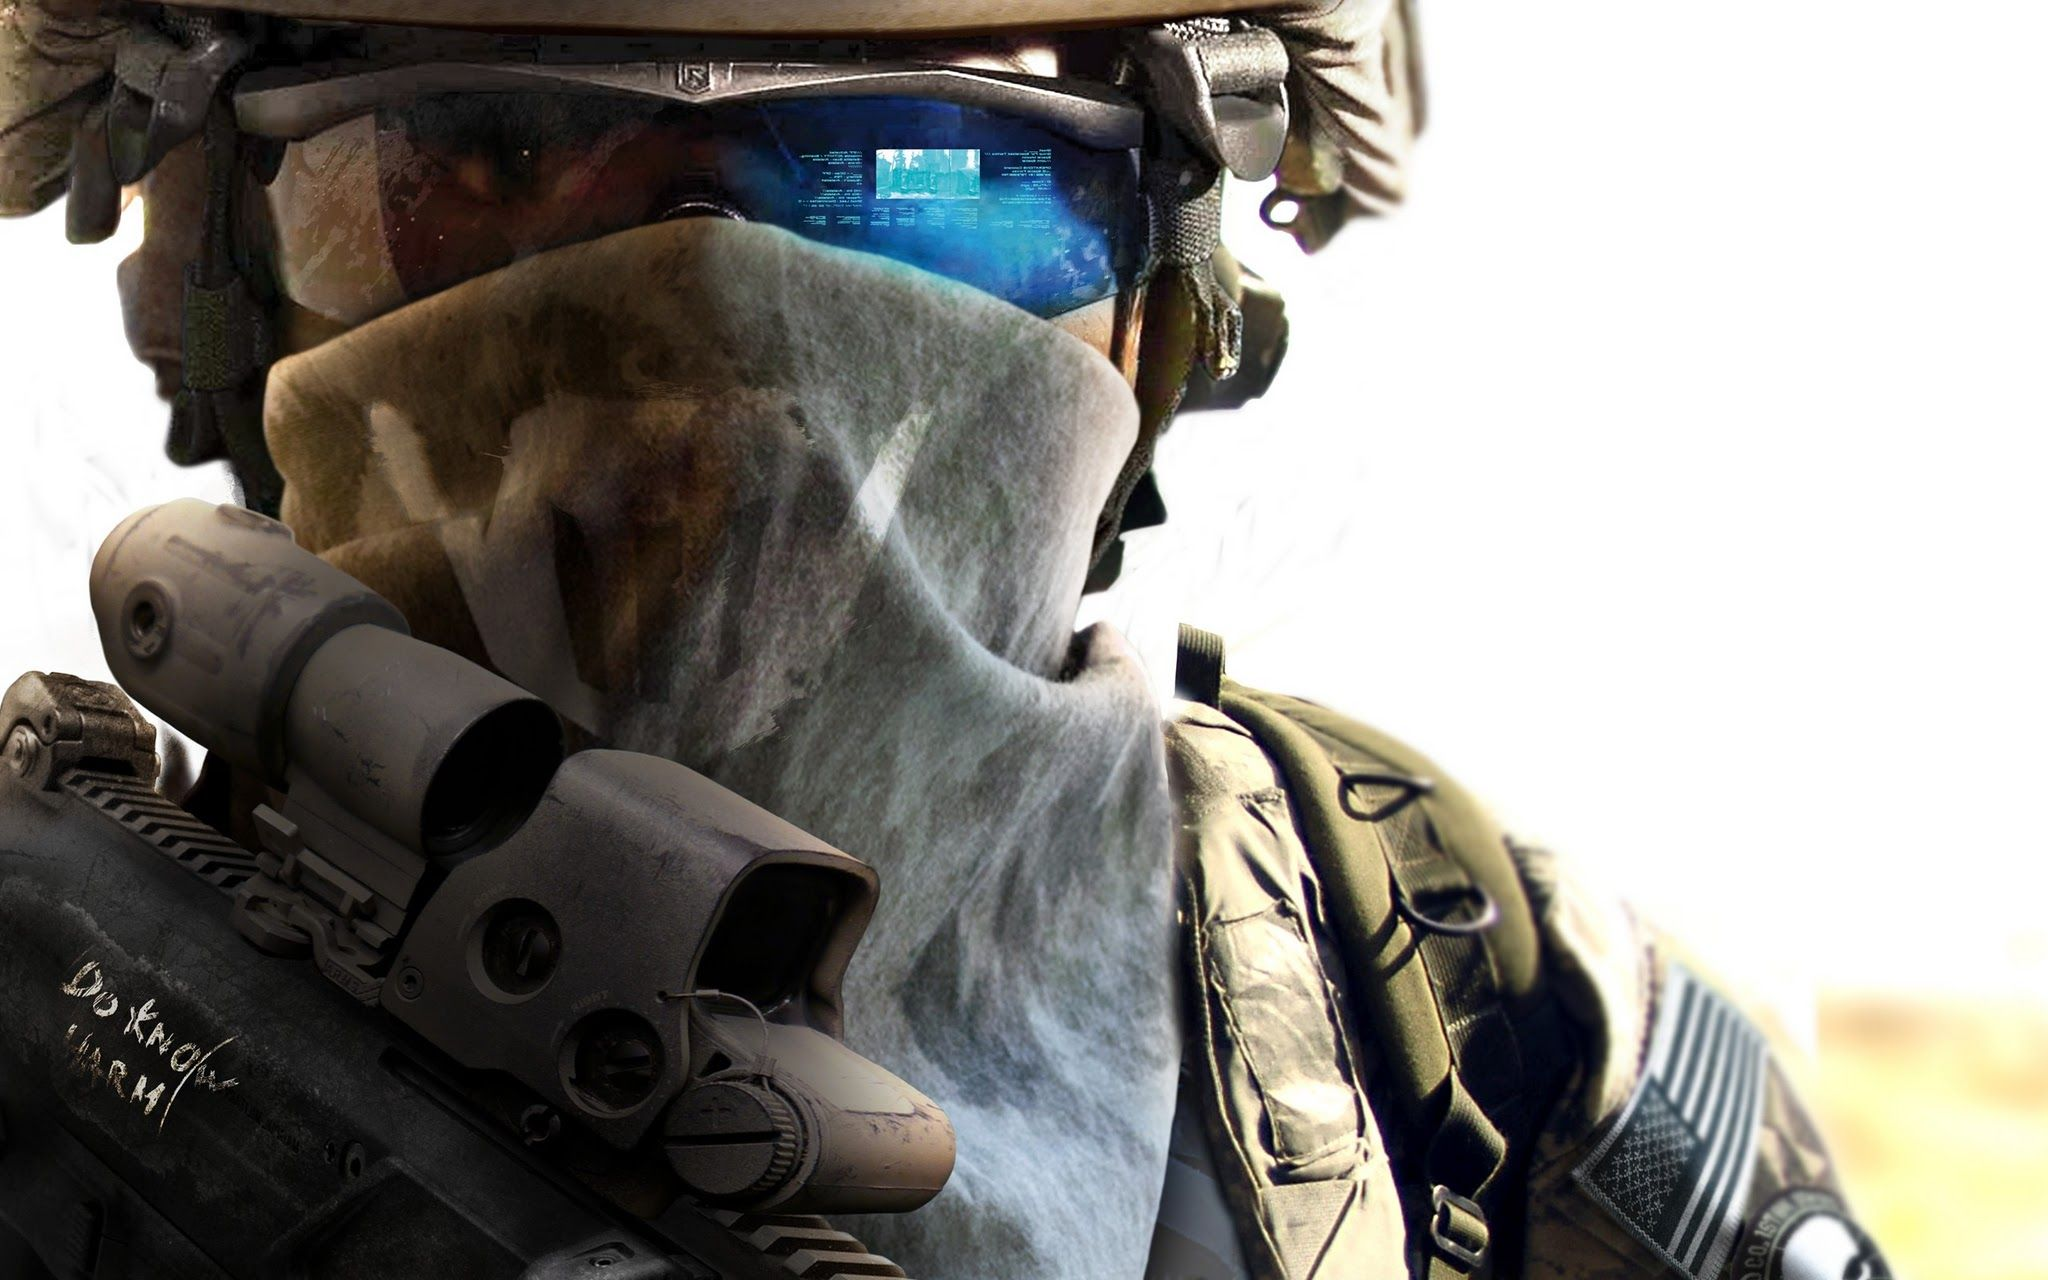 Hd wallpaper games - The 25 Best Gaming Wallpapers Hd Ideas On Pinterest Gaming Wallpapers Skyrim For Xbox One And Fallout 3 Codes